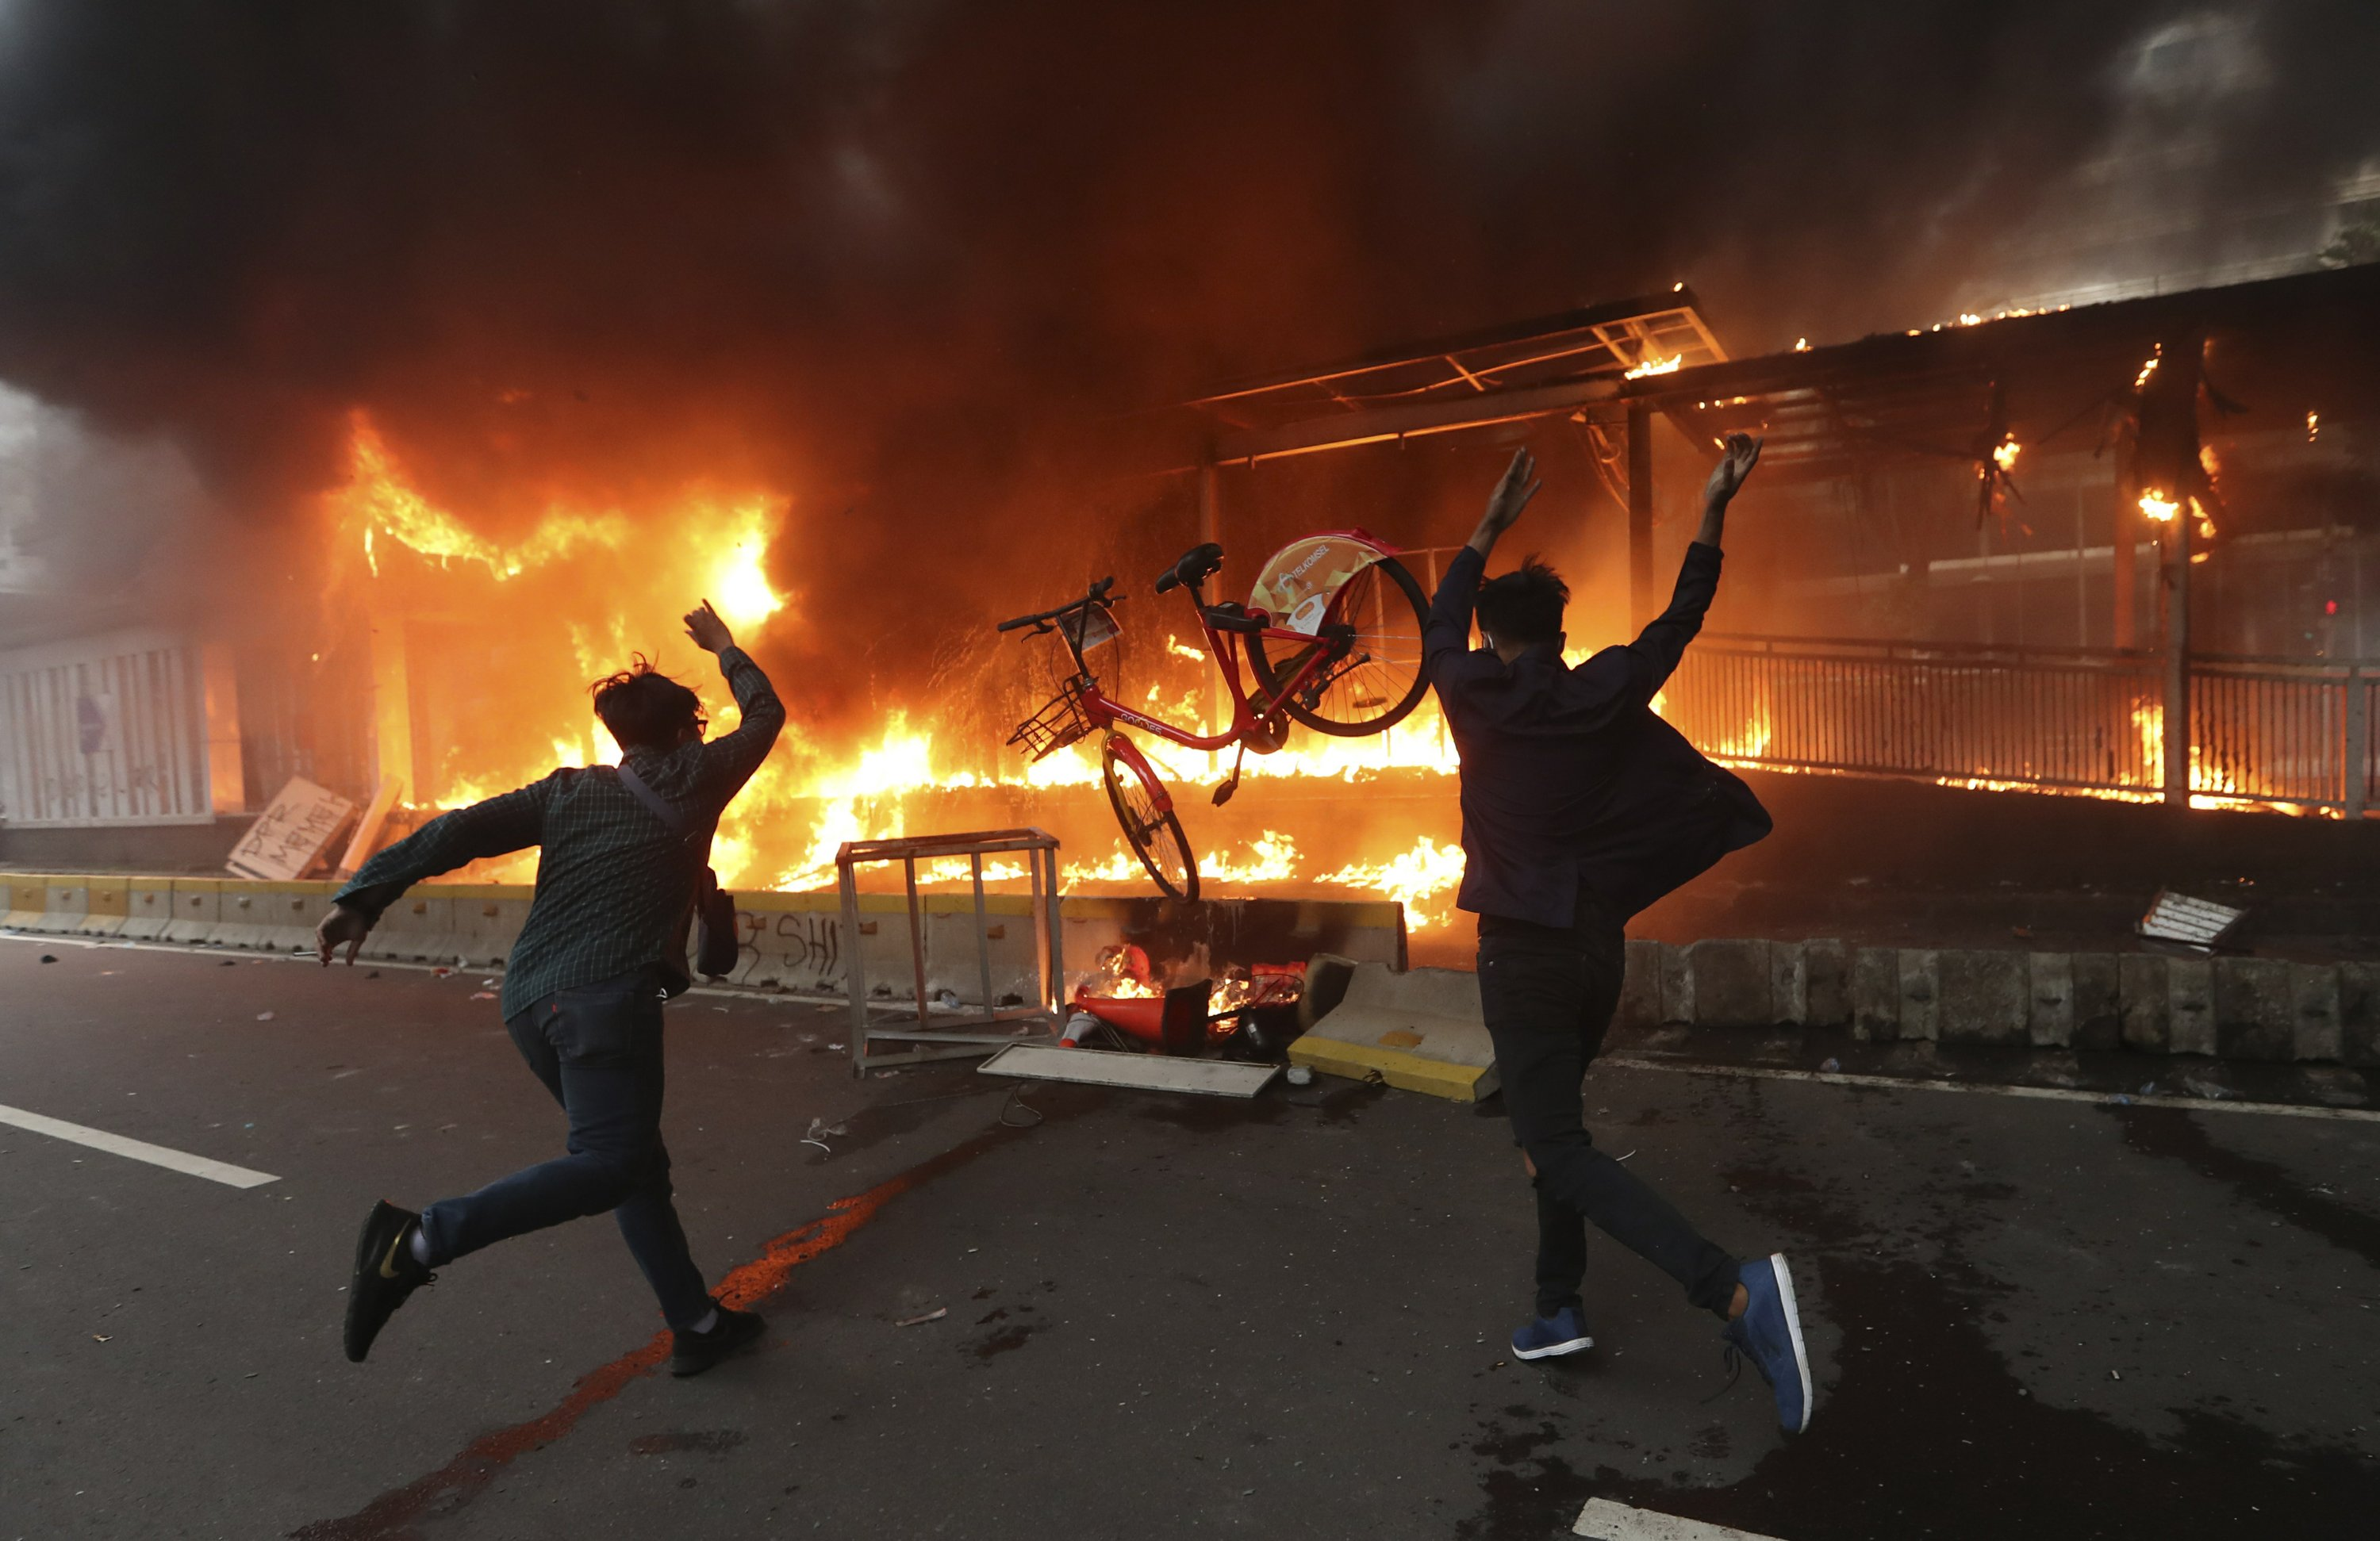 Protests against new labor law turn violent across Indonesia